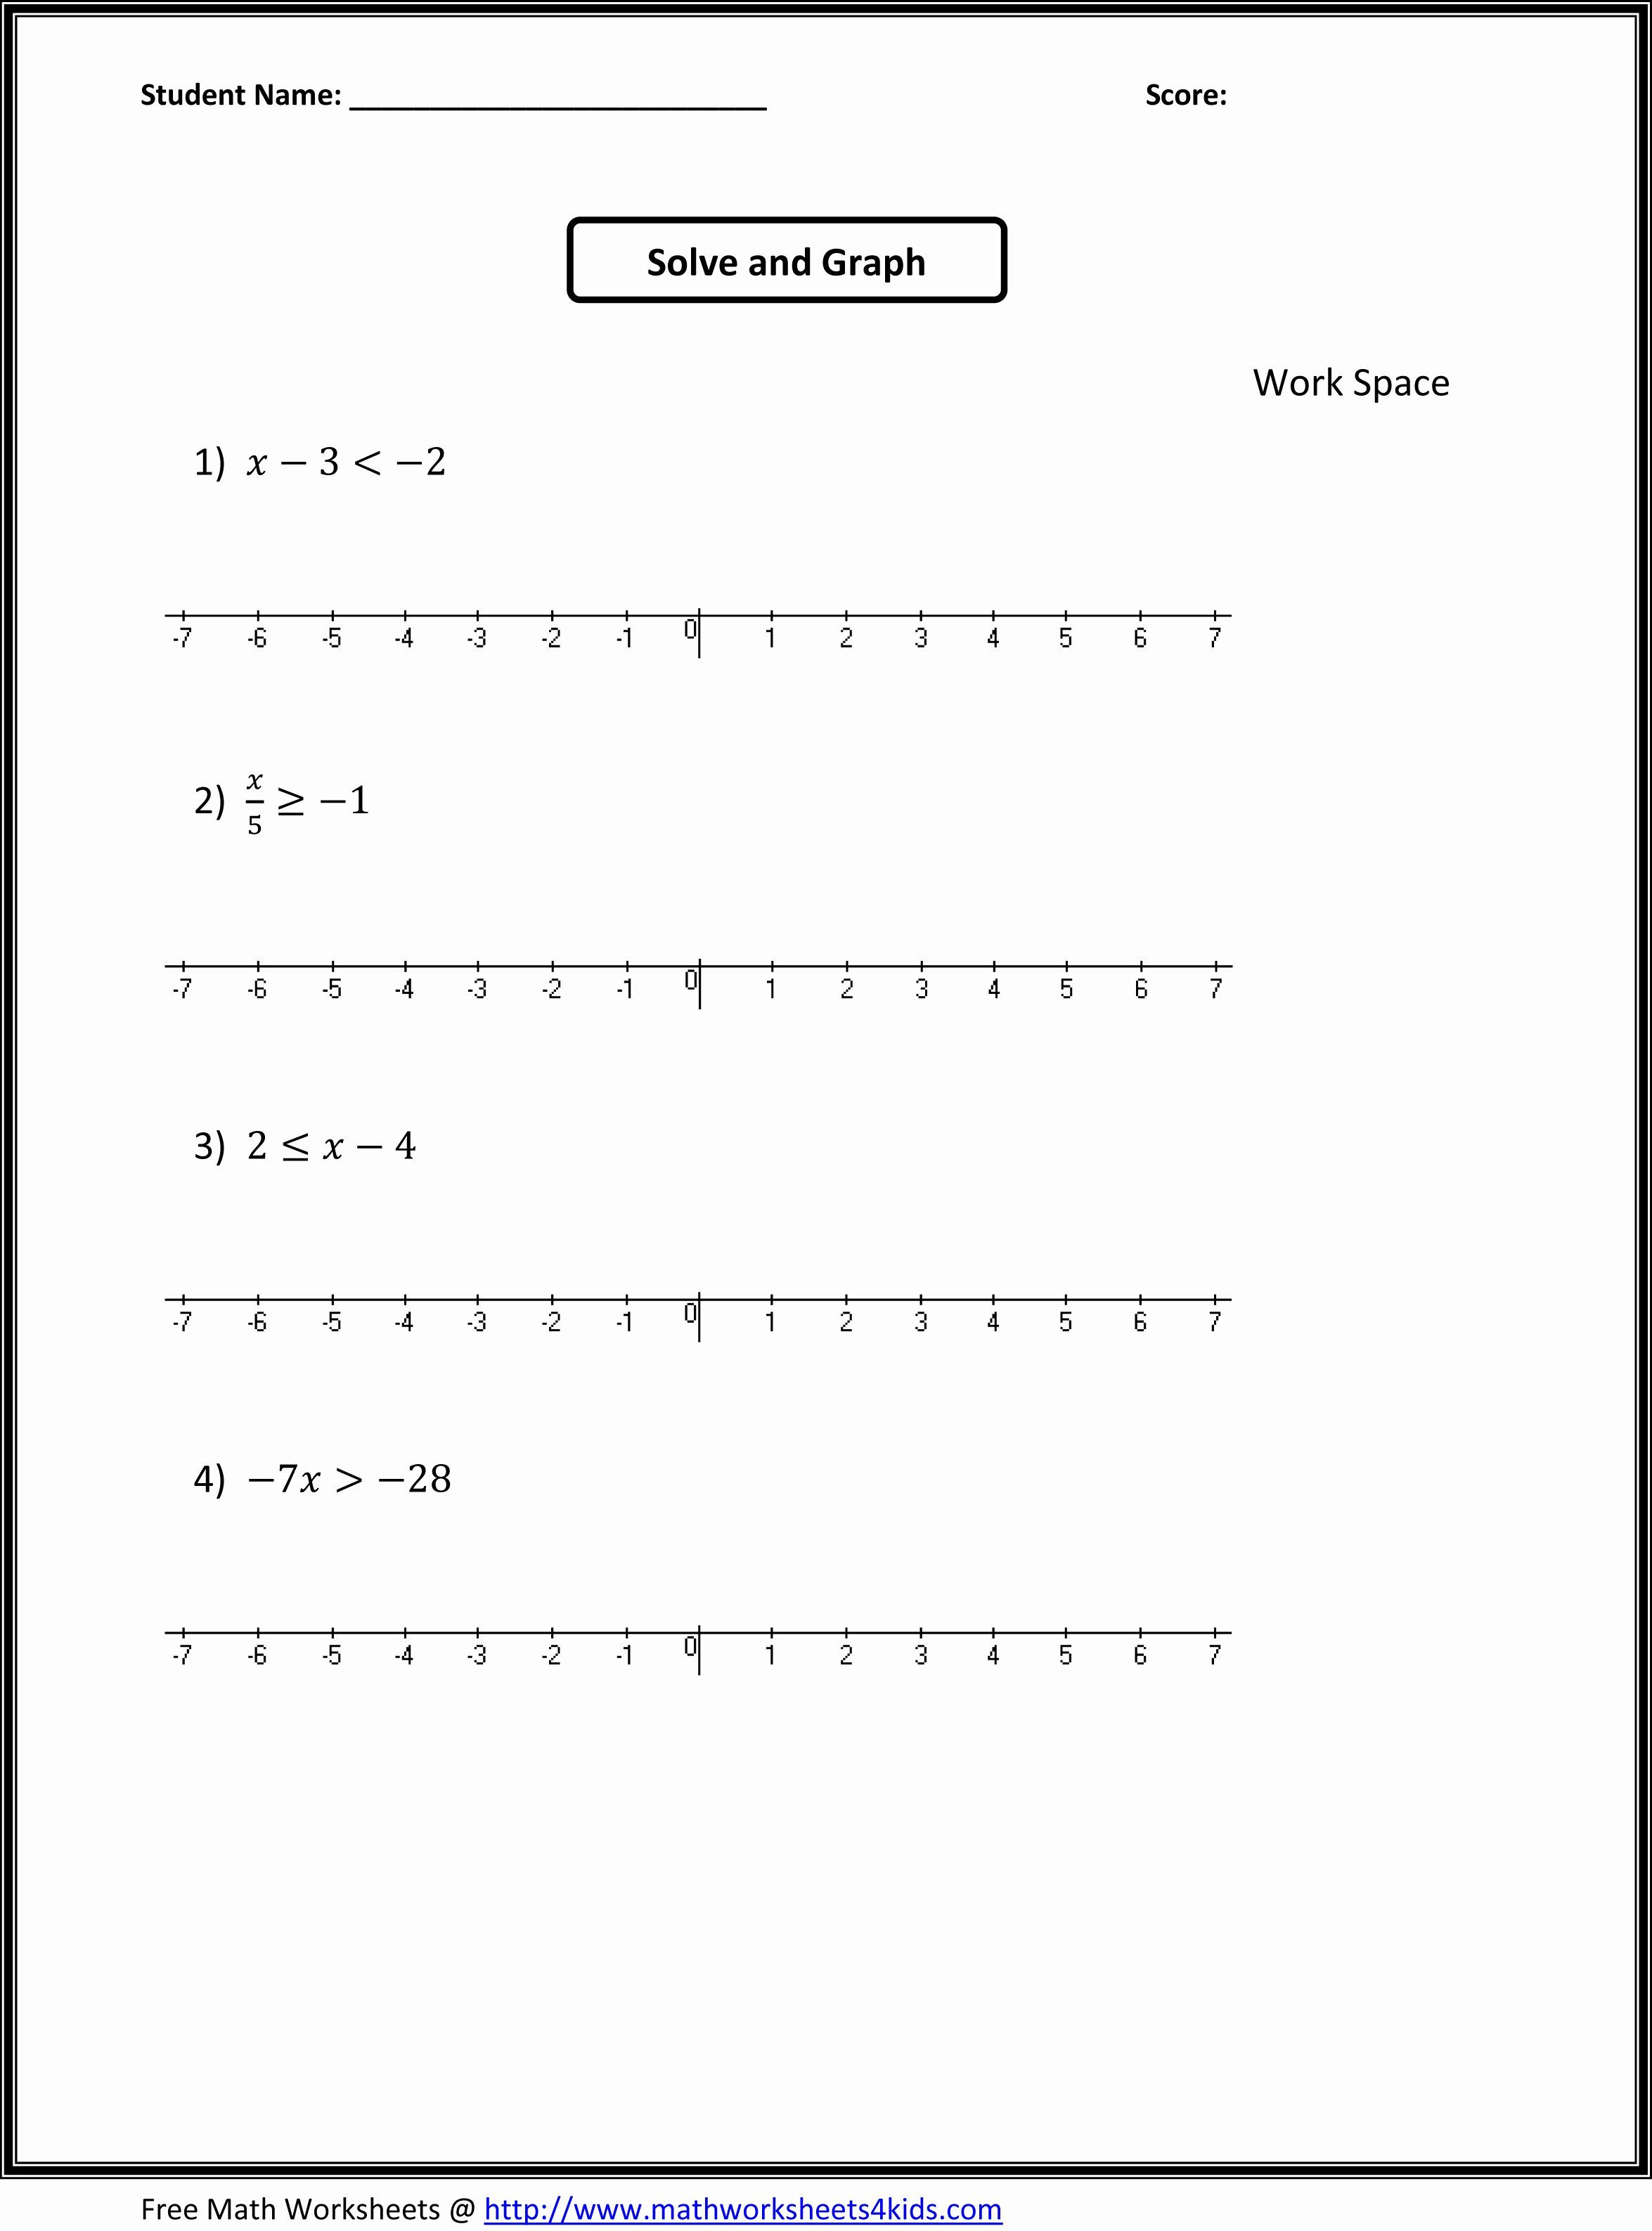 Triangle Inequality Theorem Worksheet New Download 7th